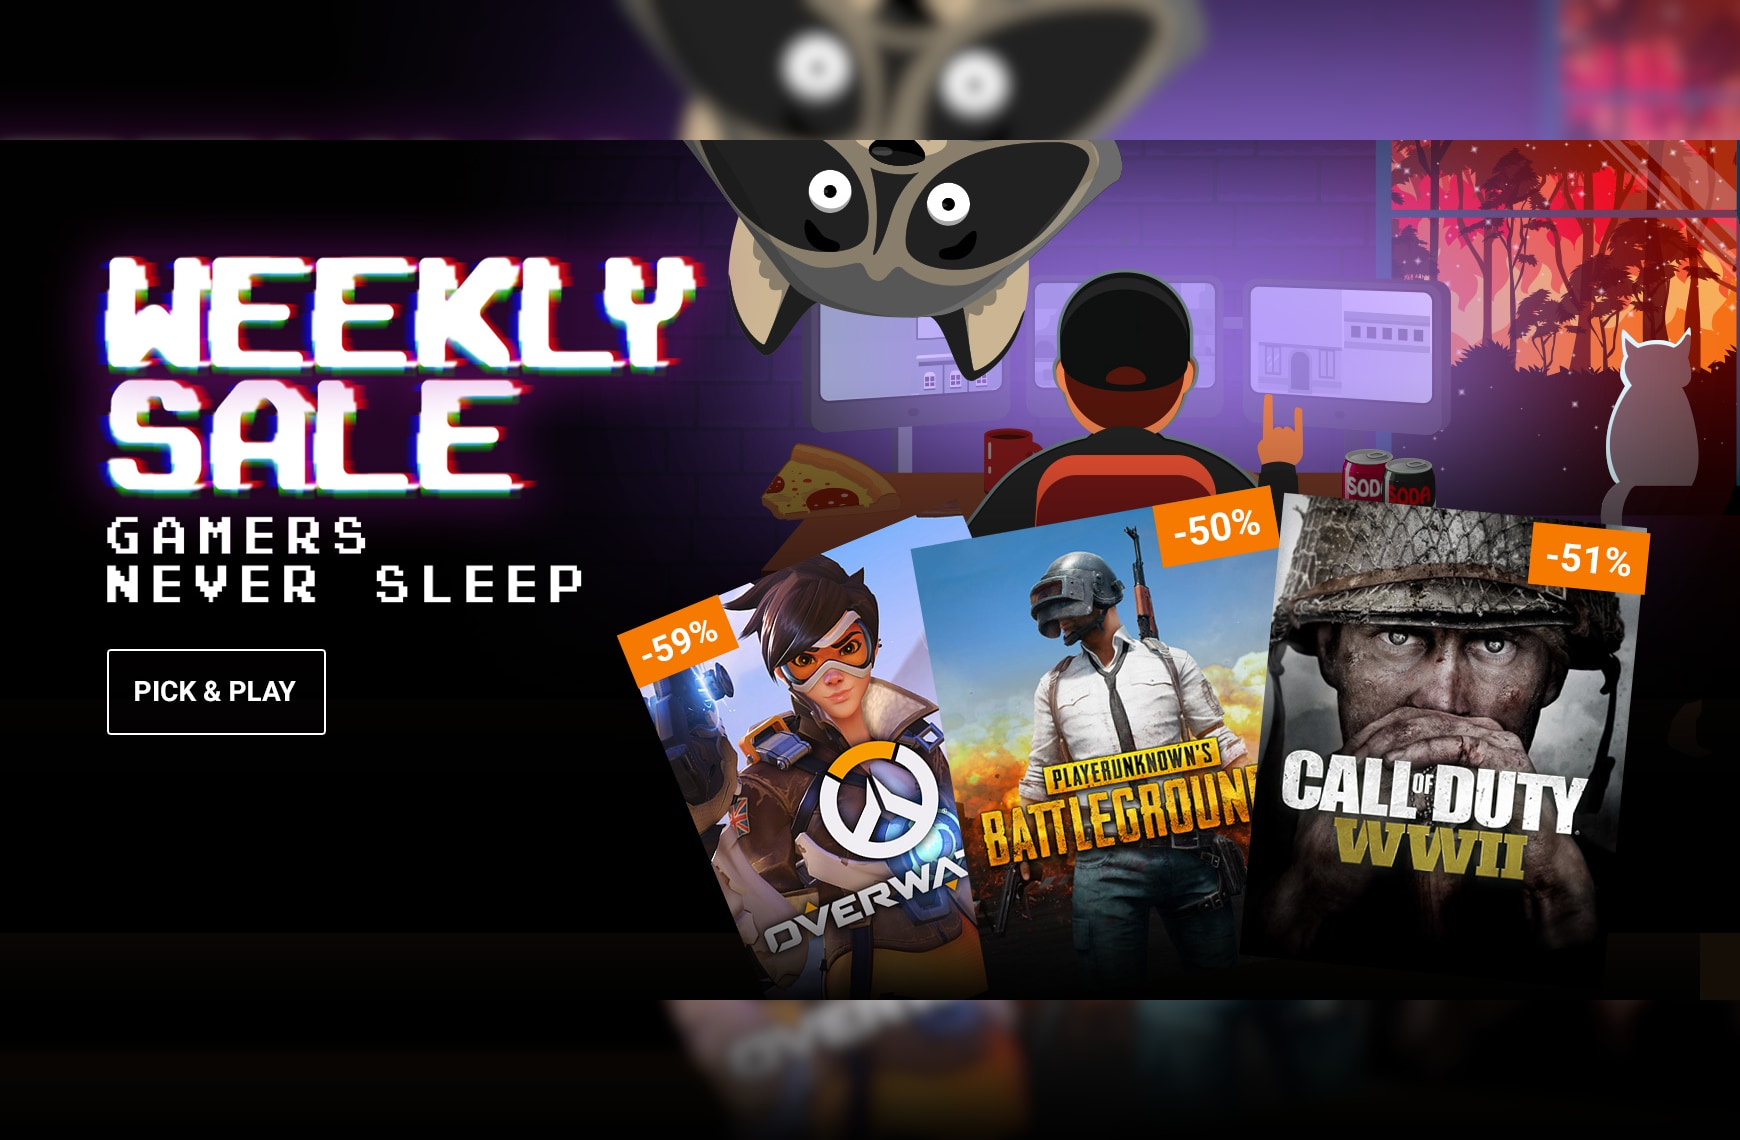 Games to pull an all-nighter for!